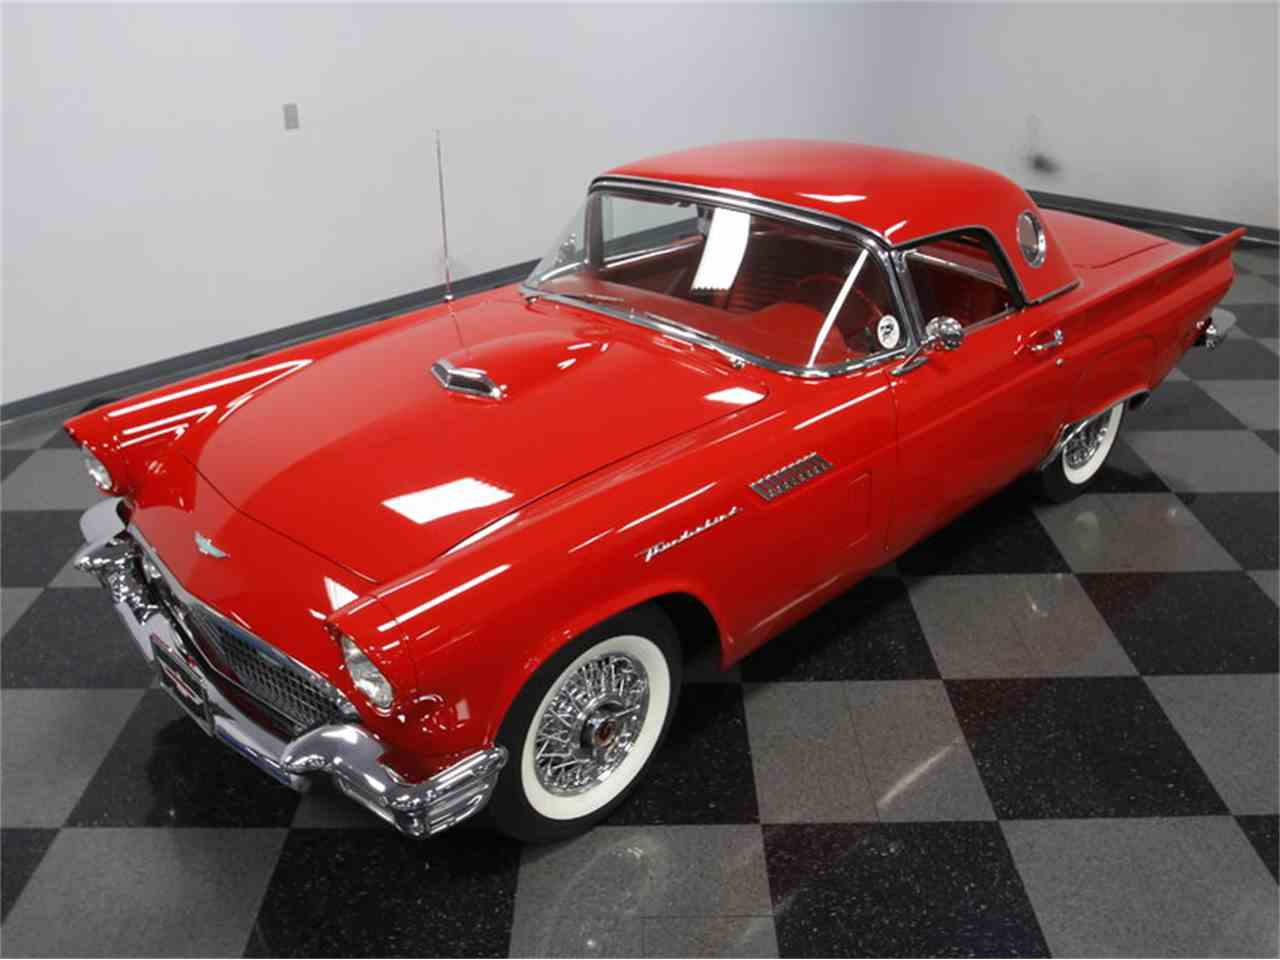 Large Picture of 1957 Ford Thunderbird located in North Carolina - $41,995.00 Offered by Streetside Classics - Charlotte - LSNS